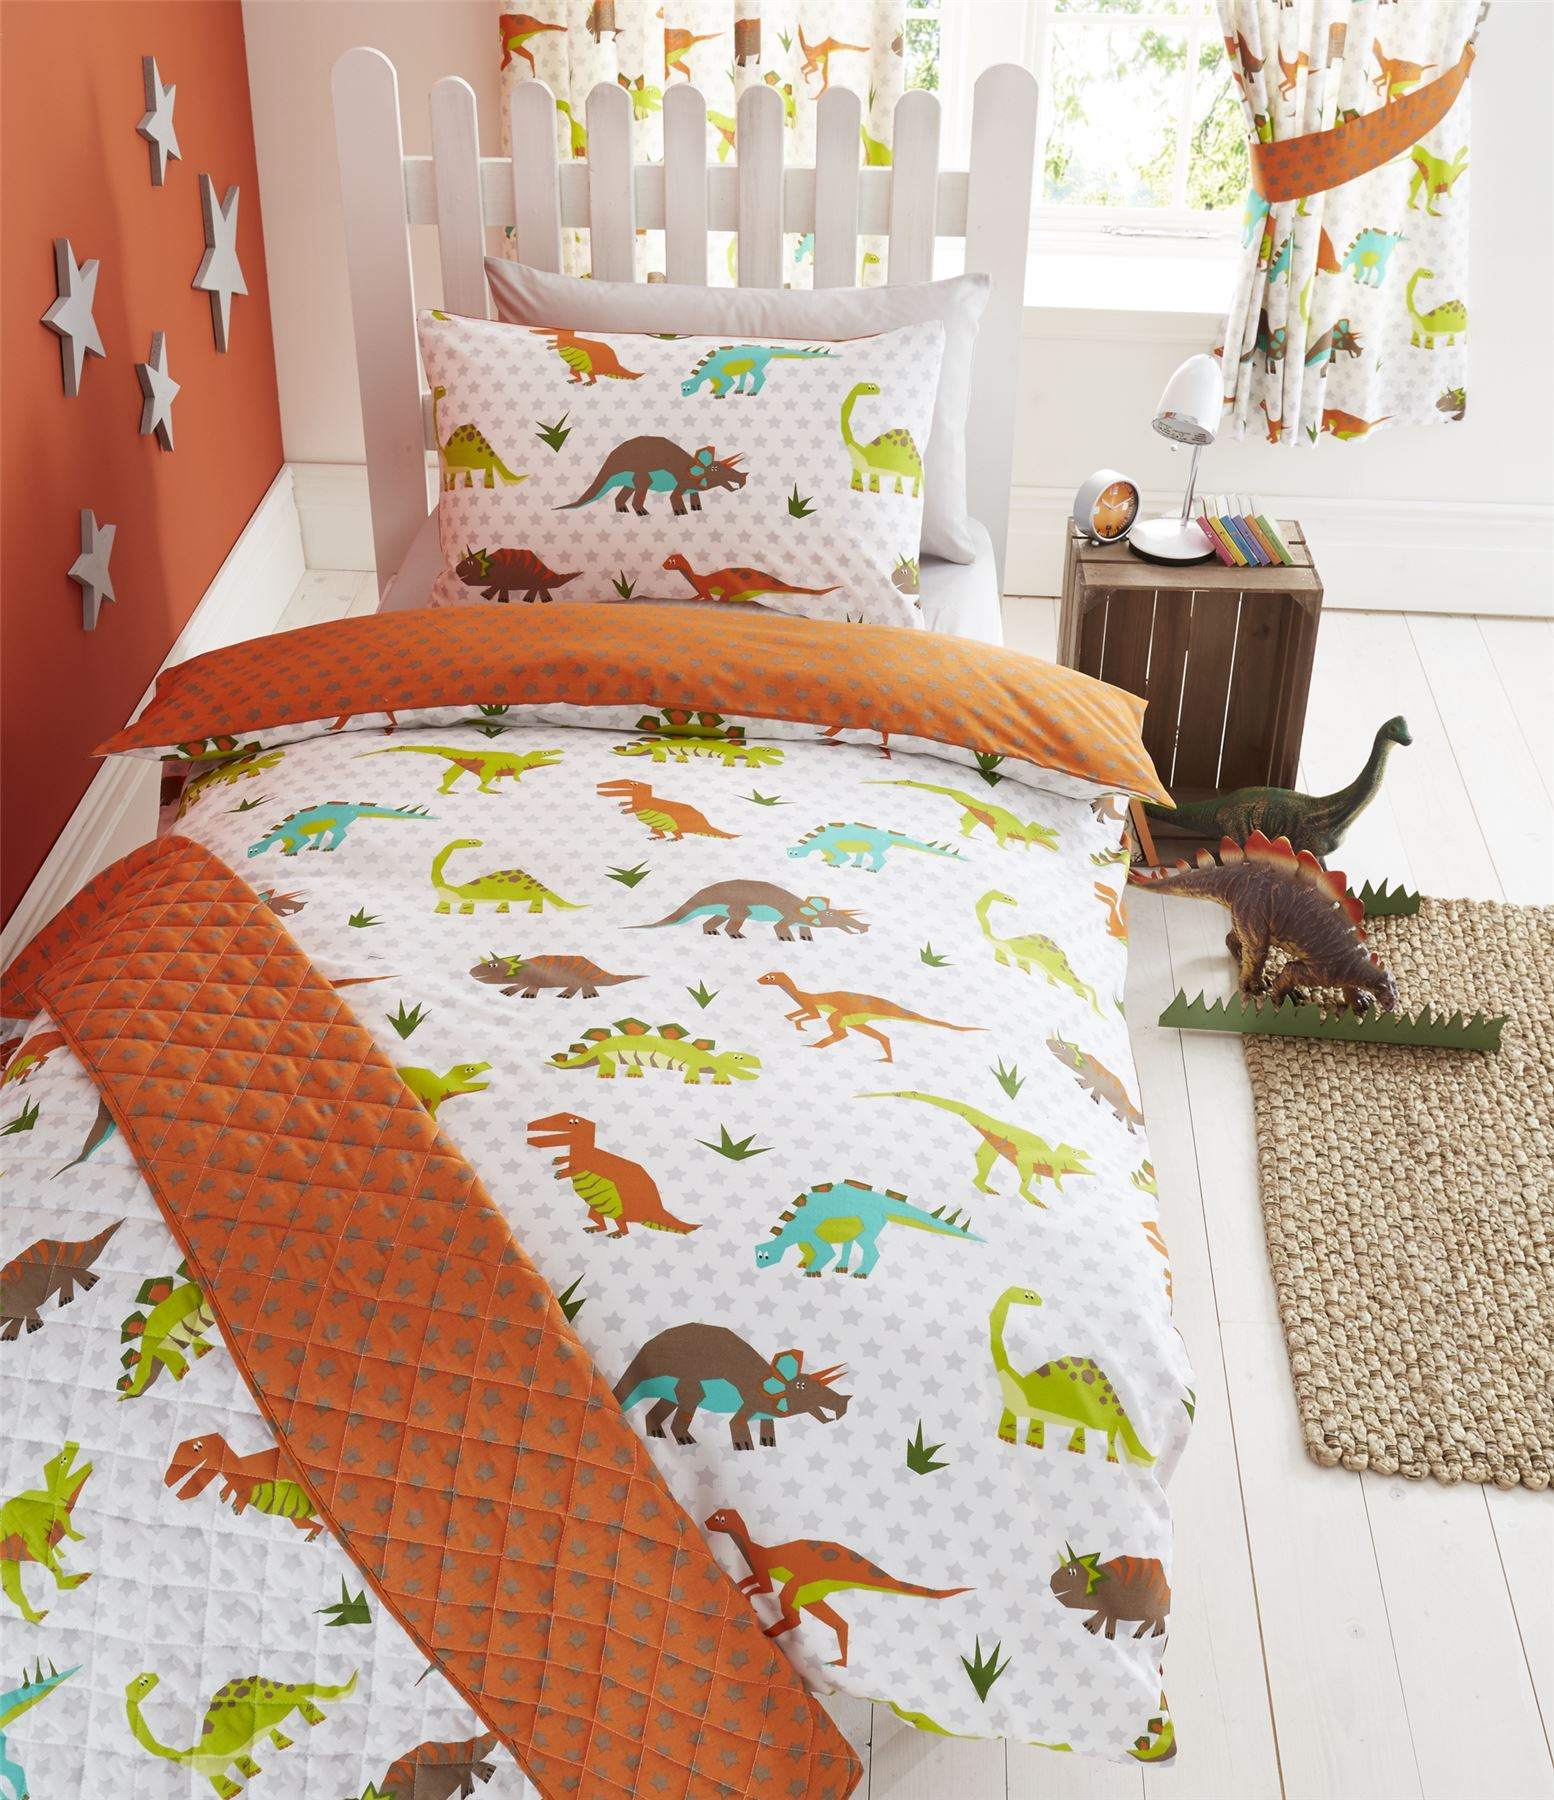 Boys Duvet Cover Pillowcase Bedding Bed Sets Or Matching Curtains Kid 39 S New Ebay